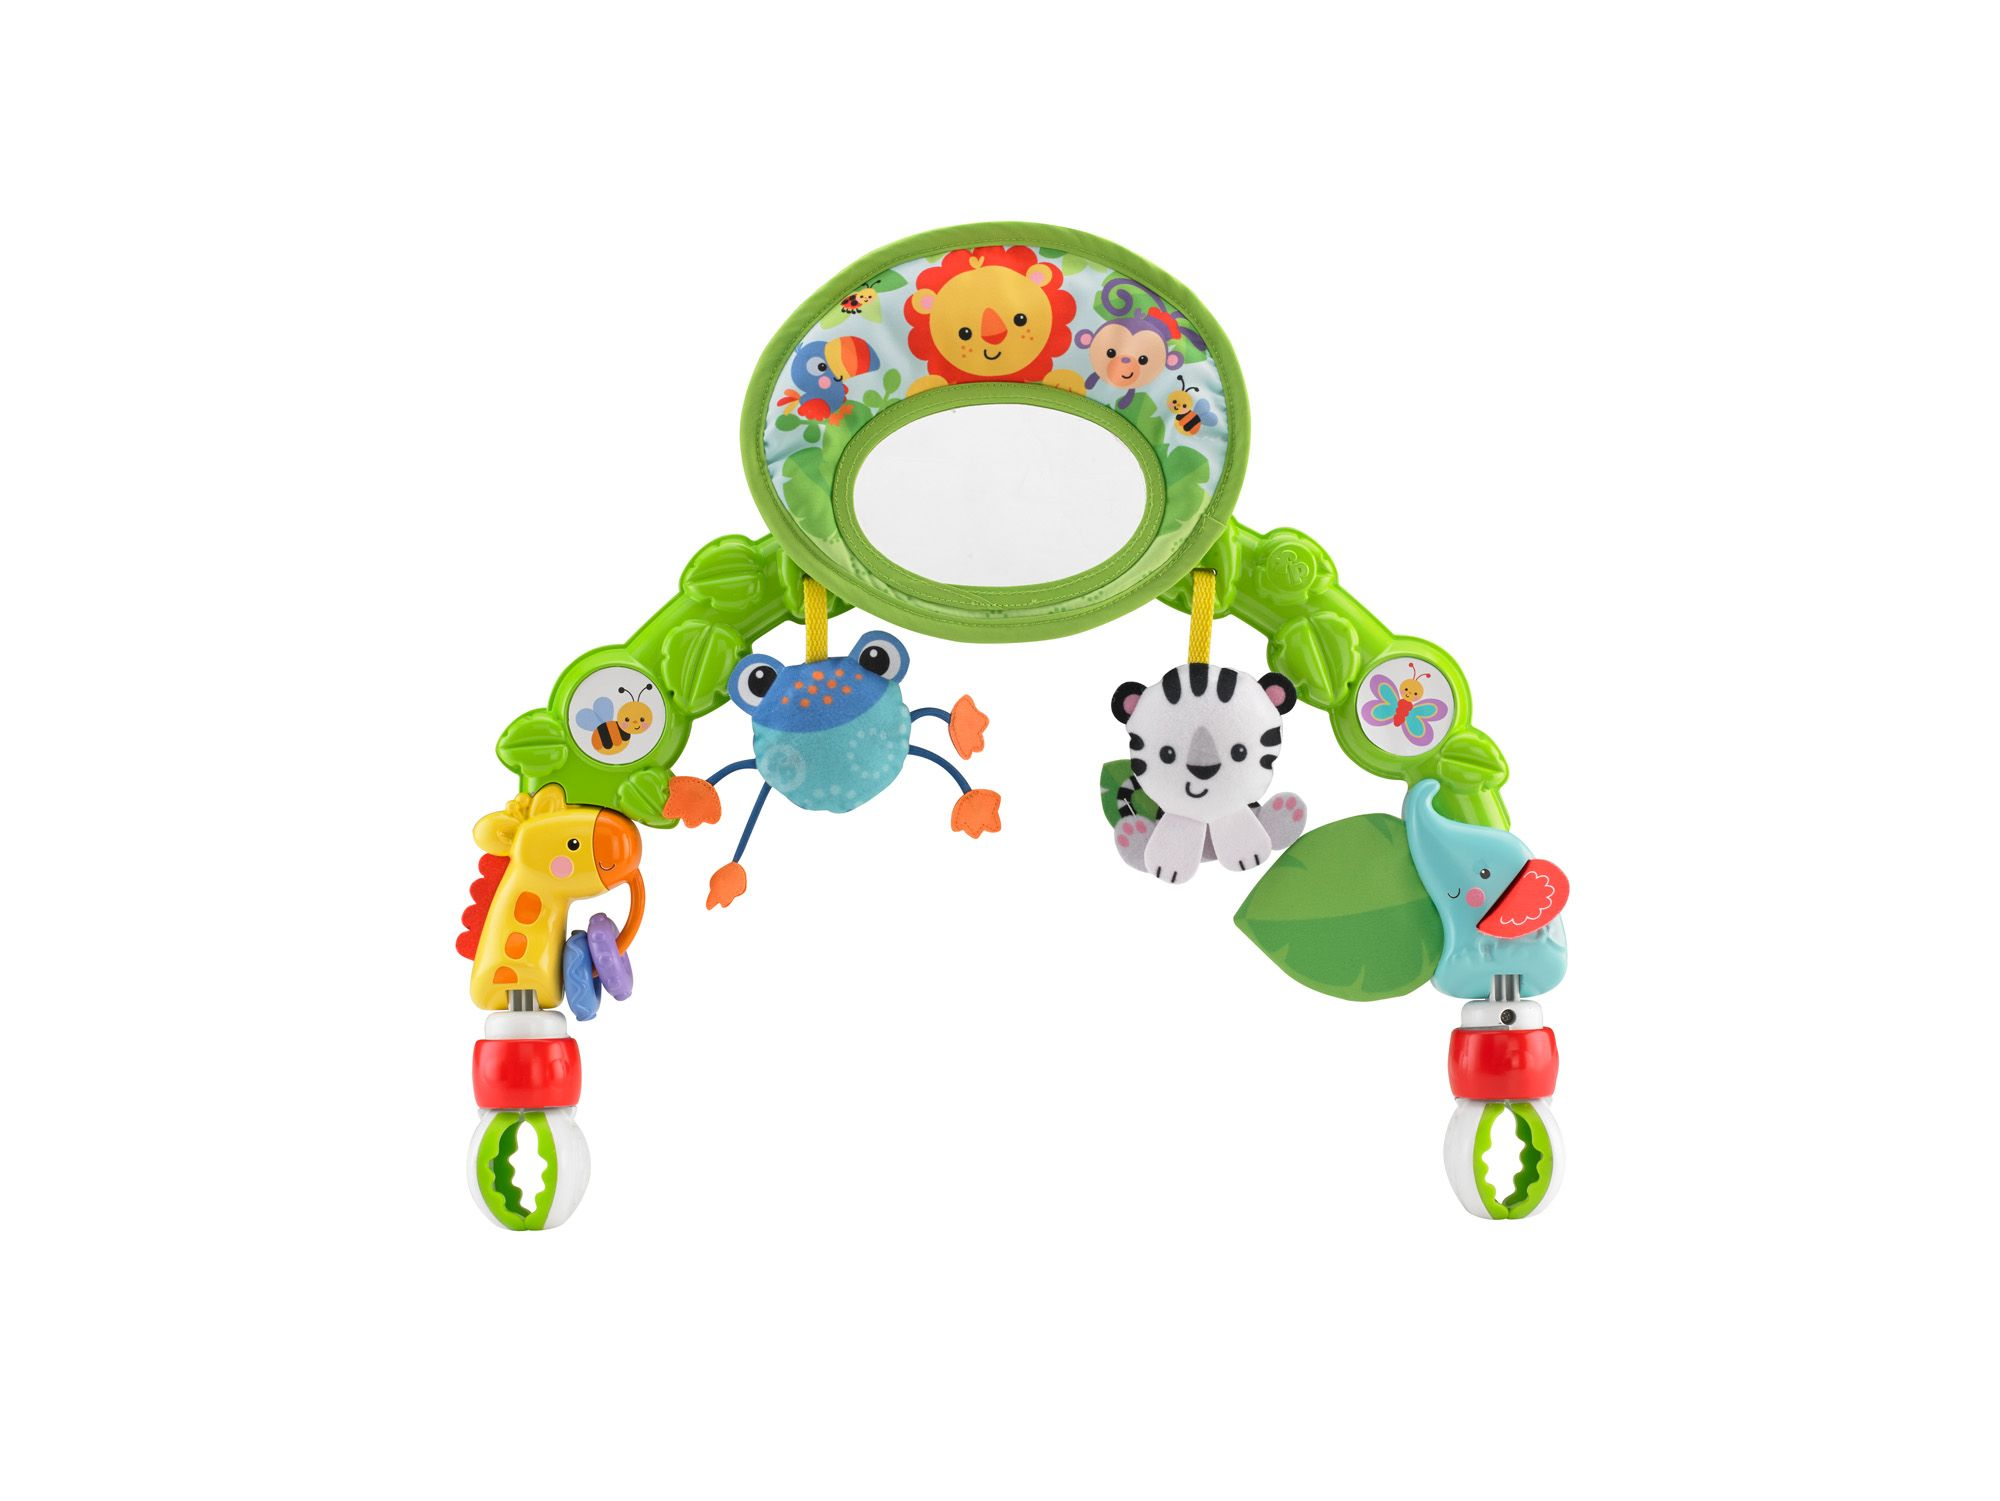 FisherPrice Deluxe Stroller Toy available online at http